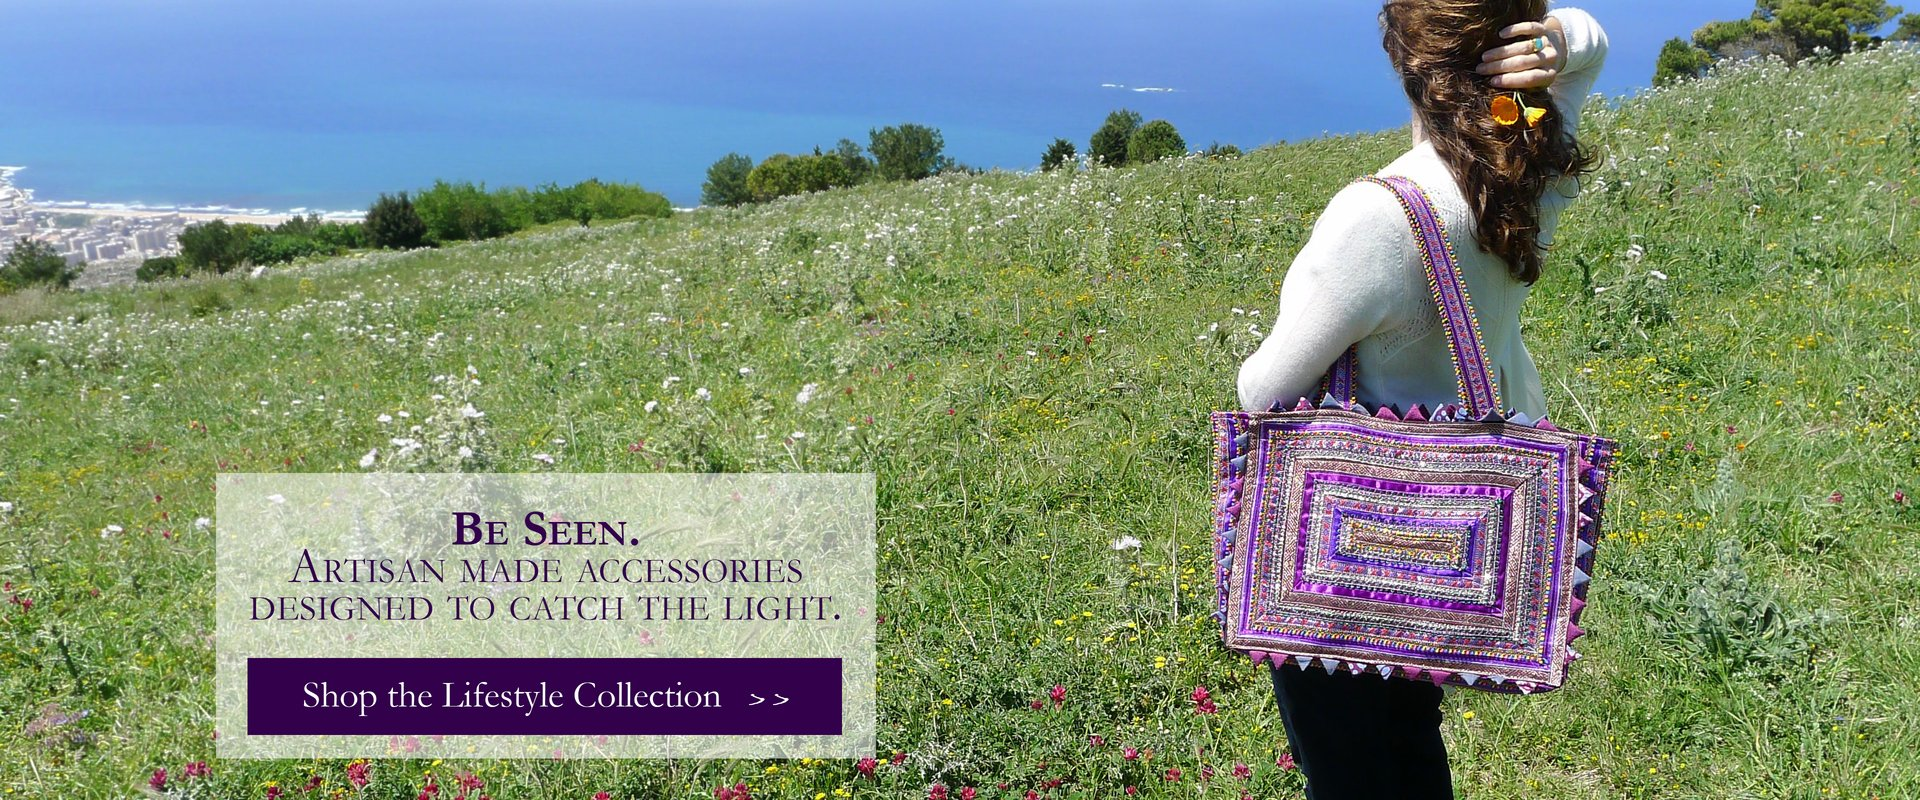 Luxury handmade fair trade silk and cotton bandhani scarves and accessories